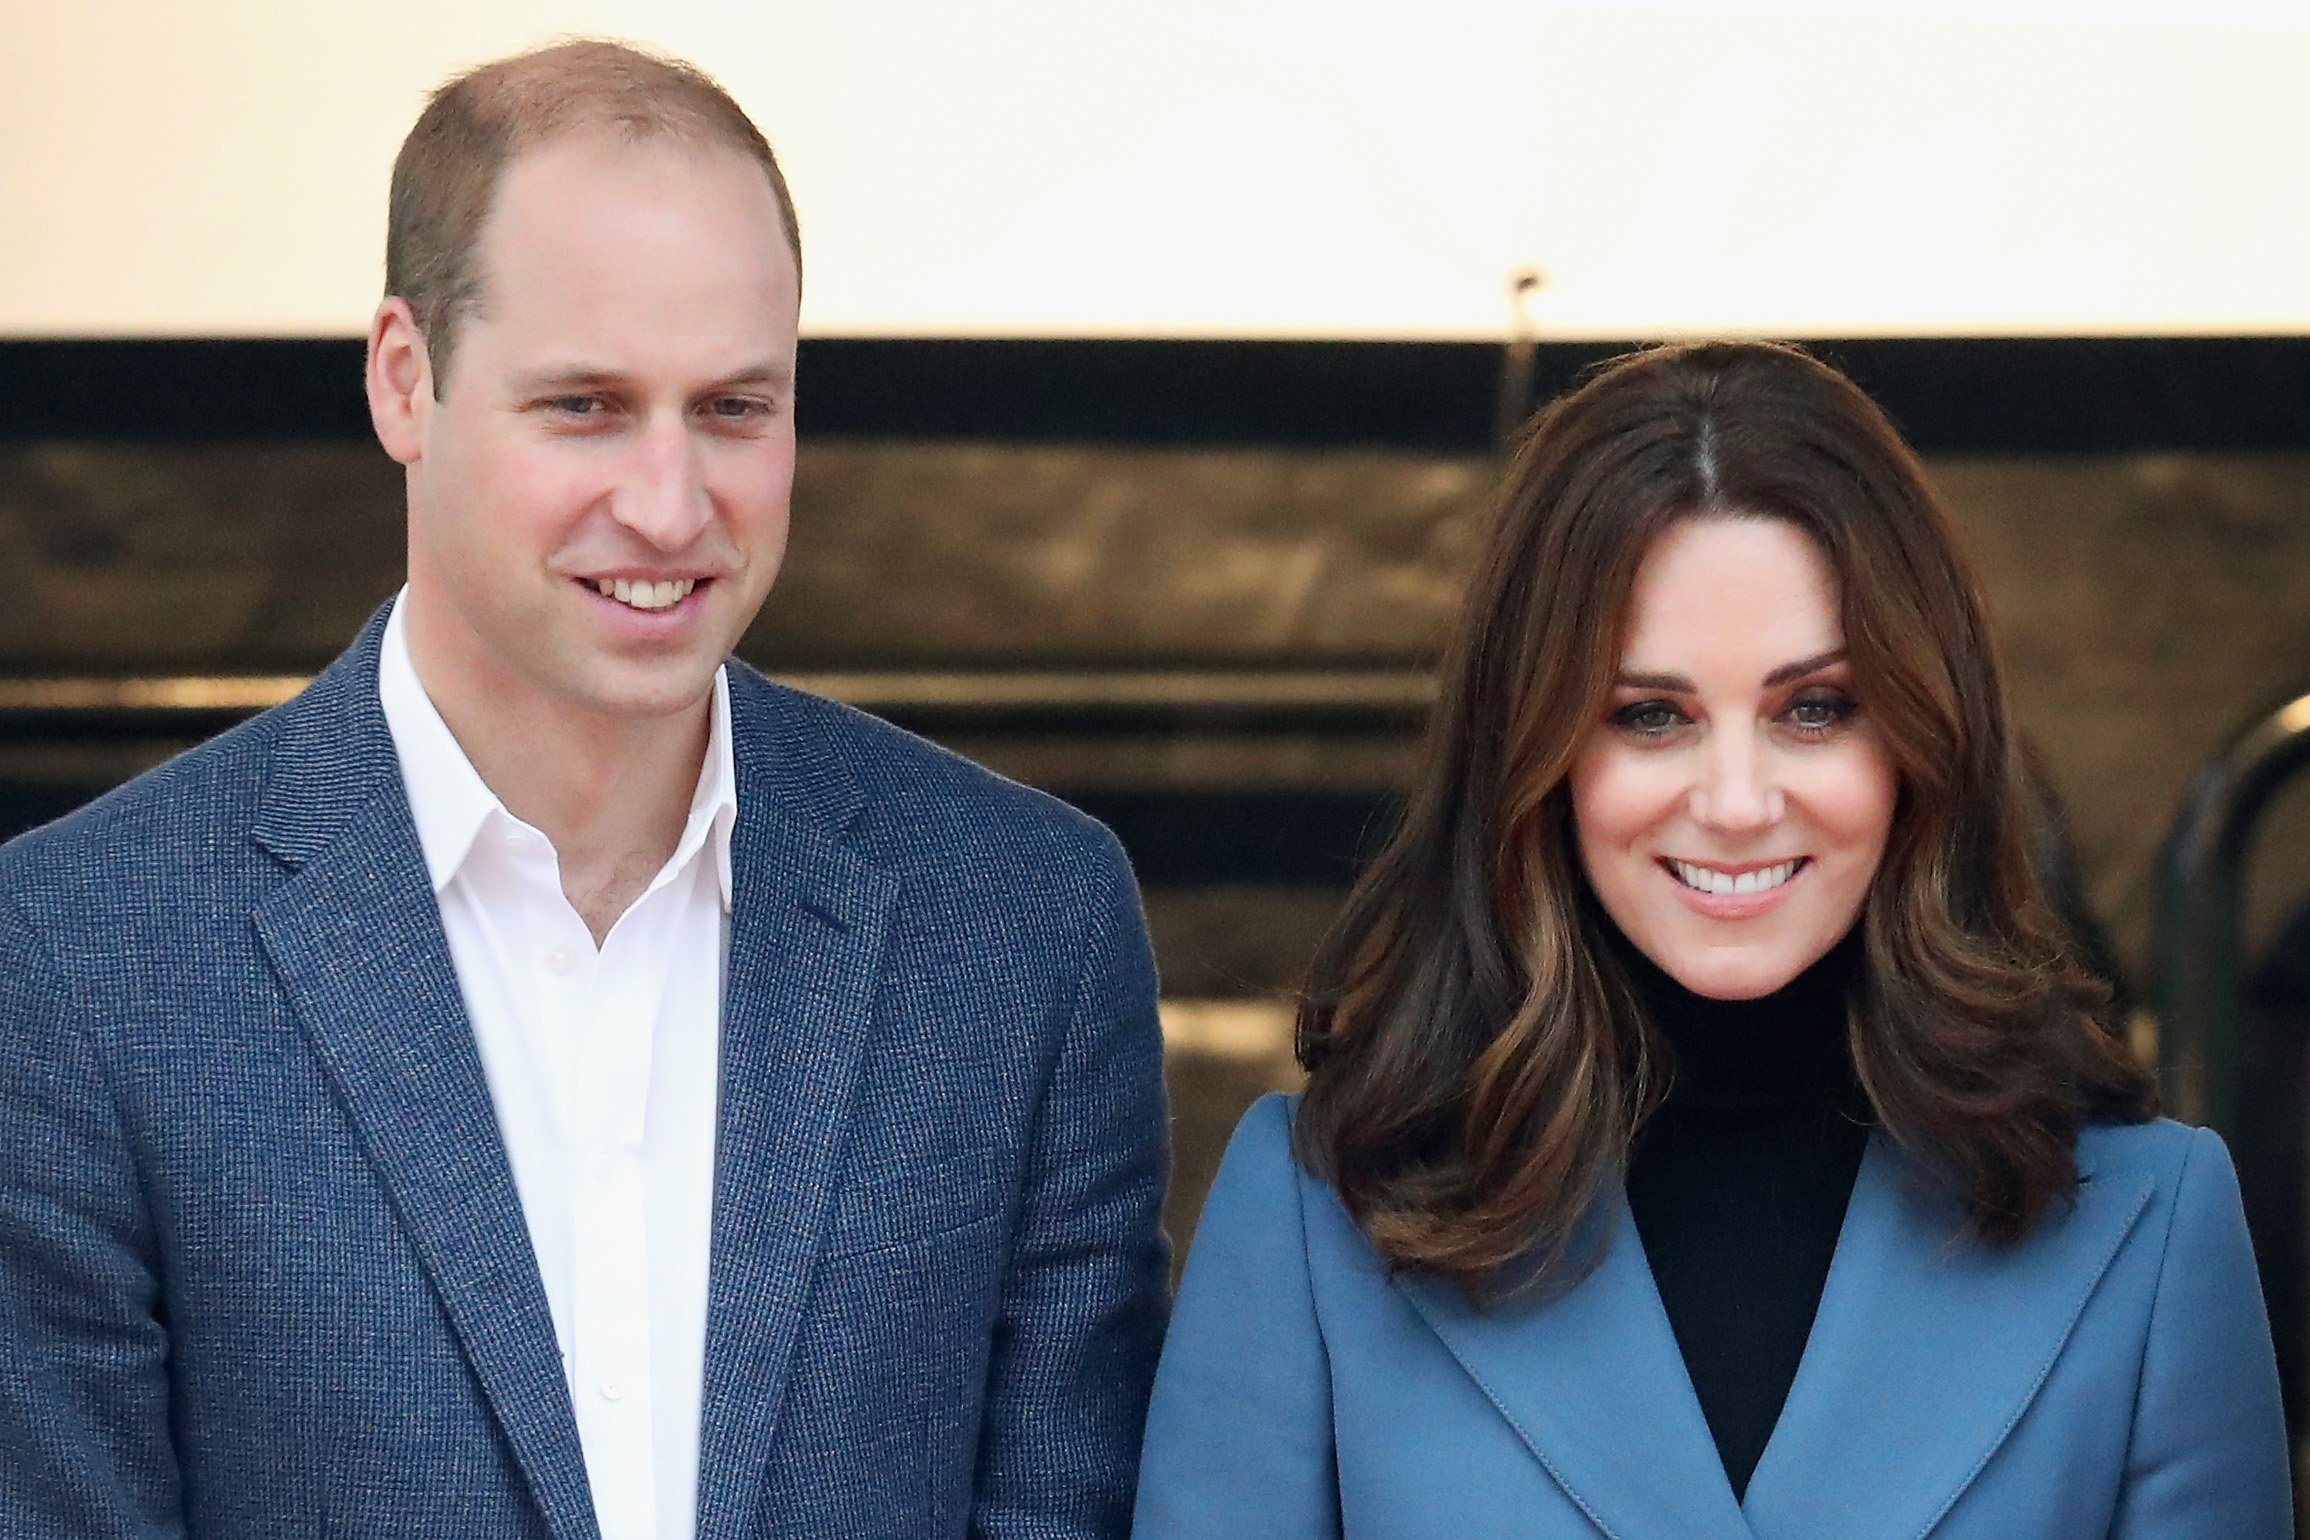 Prince William, Duke of Cambridge and Catherine, Duchess of Cambridge attend the Coach Core graduation ceremony for more than 150 Coach Core apprentices at The London Stadium on October 18, 2017 | Photo: Getty Images